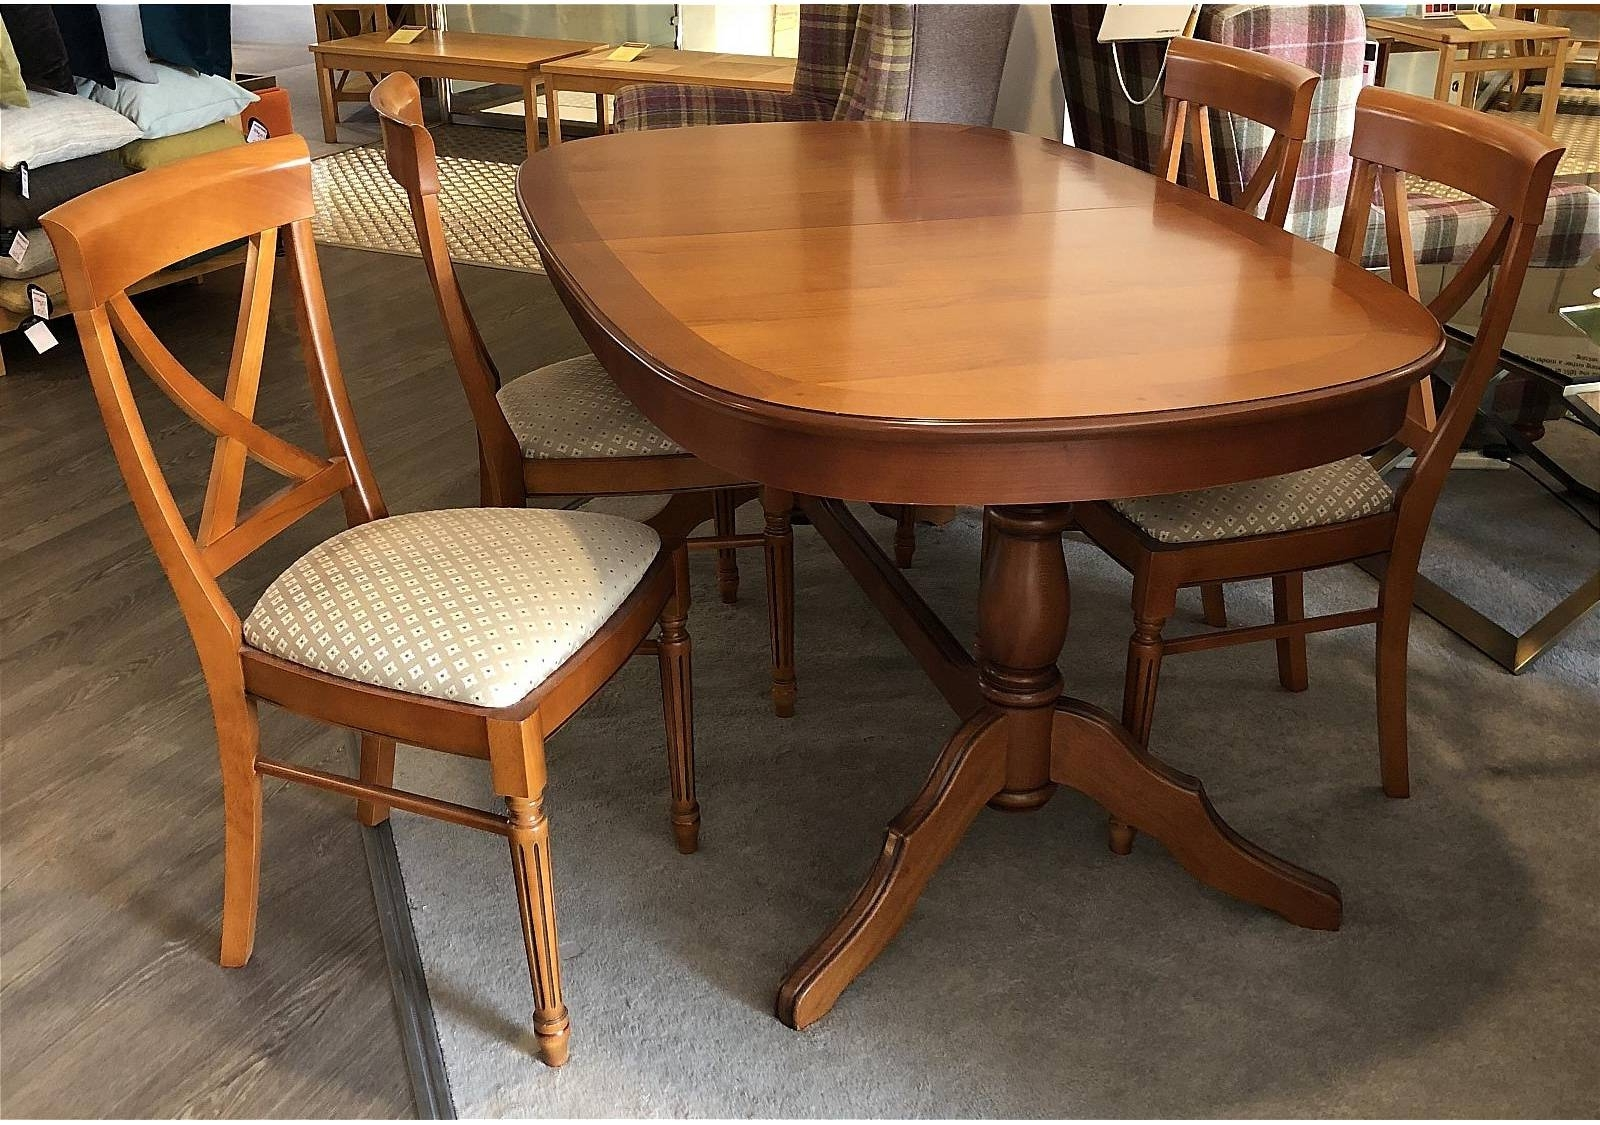 Vale Furnishers Cork Medium Oval Extending Dining Table And 4 Cross In Well Known Cork Dining Tables (View 17 of 25)